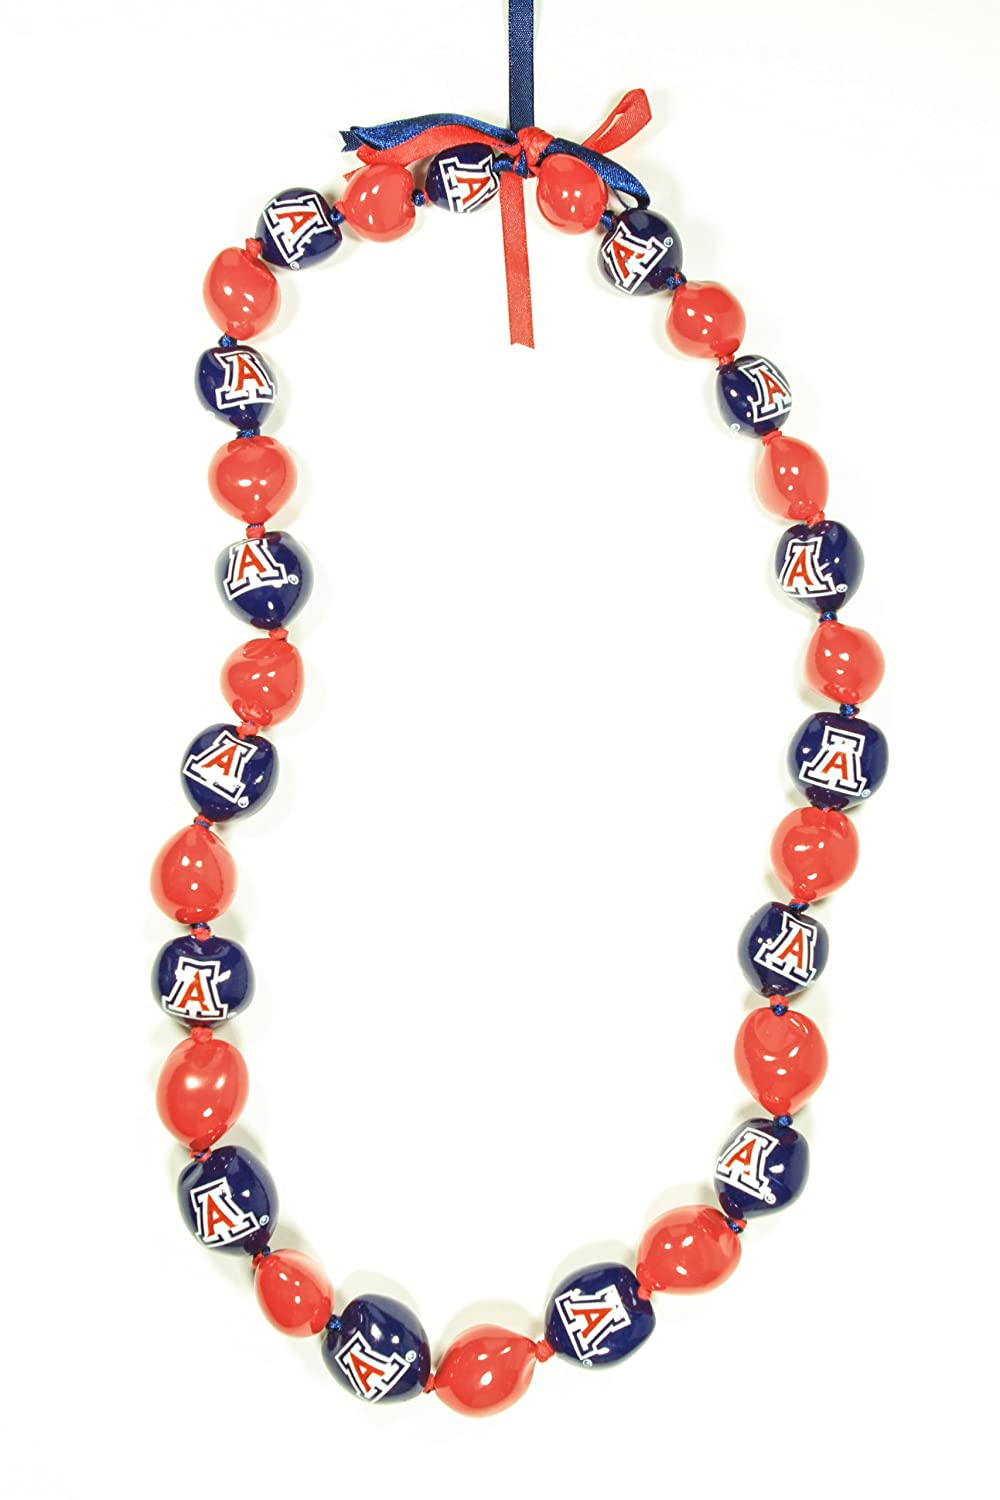 real eagles go nuts necklace ku fans product philadelphia nut nfl kukui